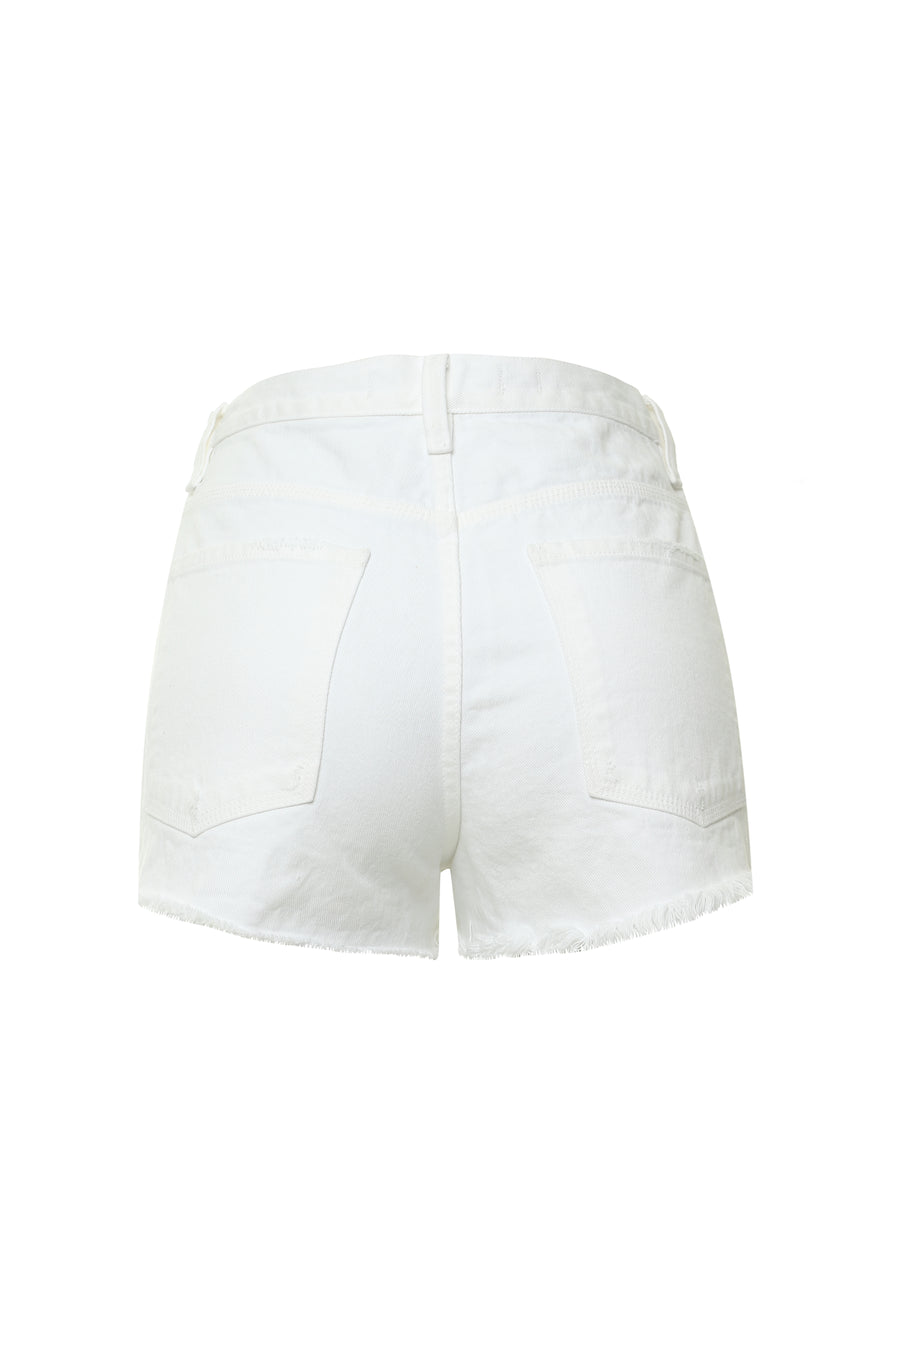 SHORTS CITY BRANCO